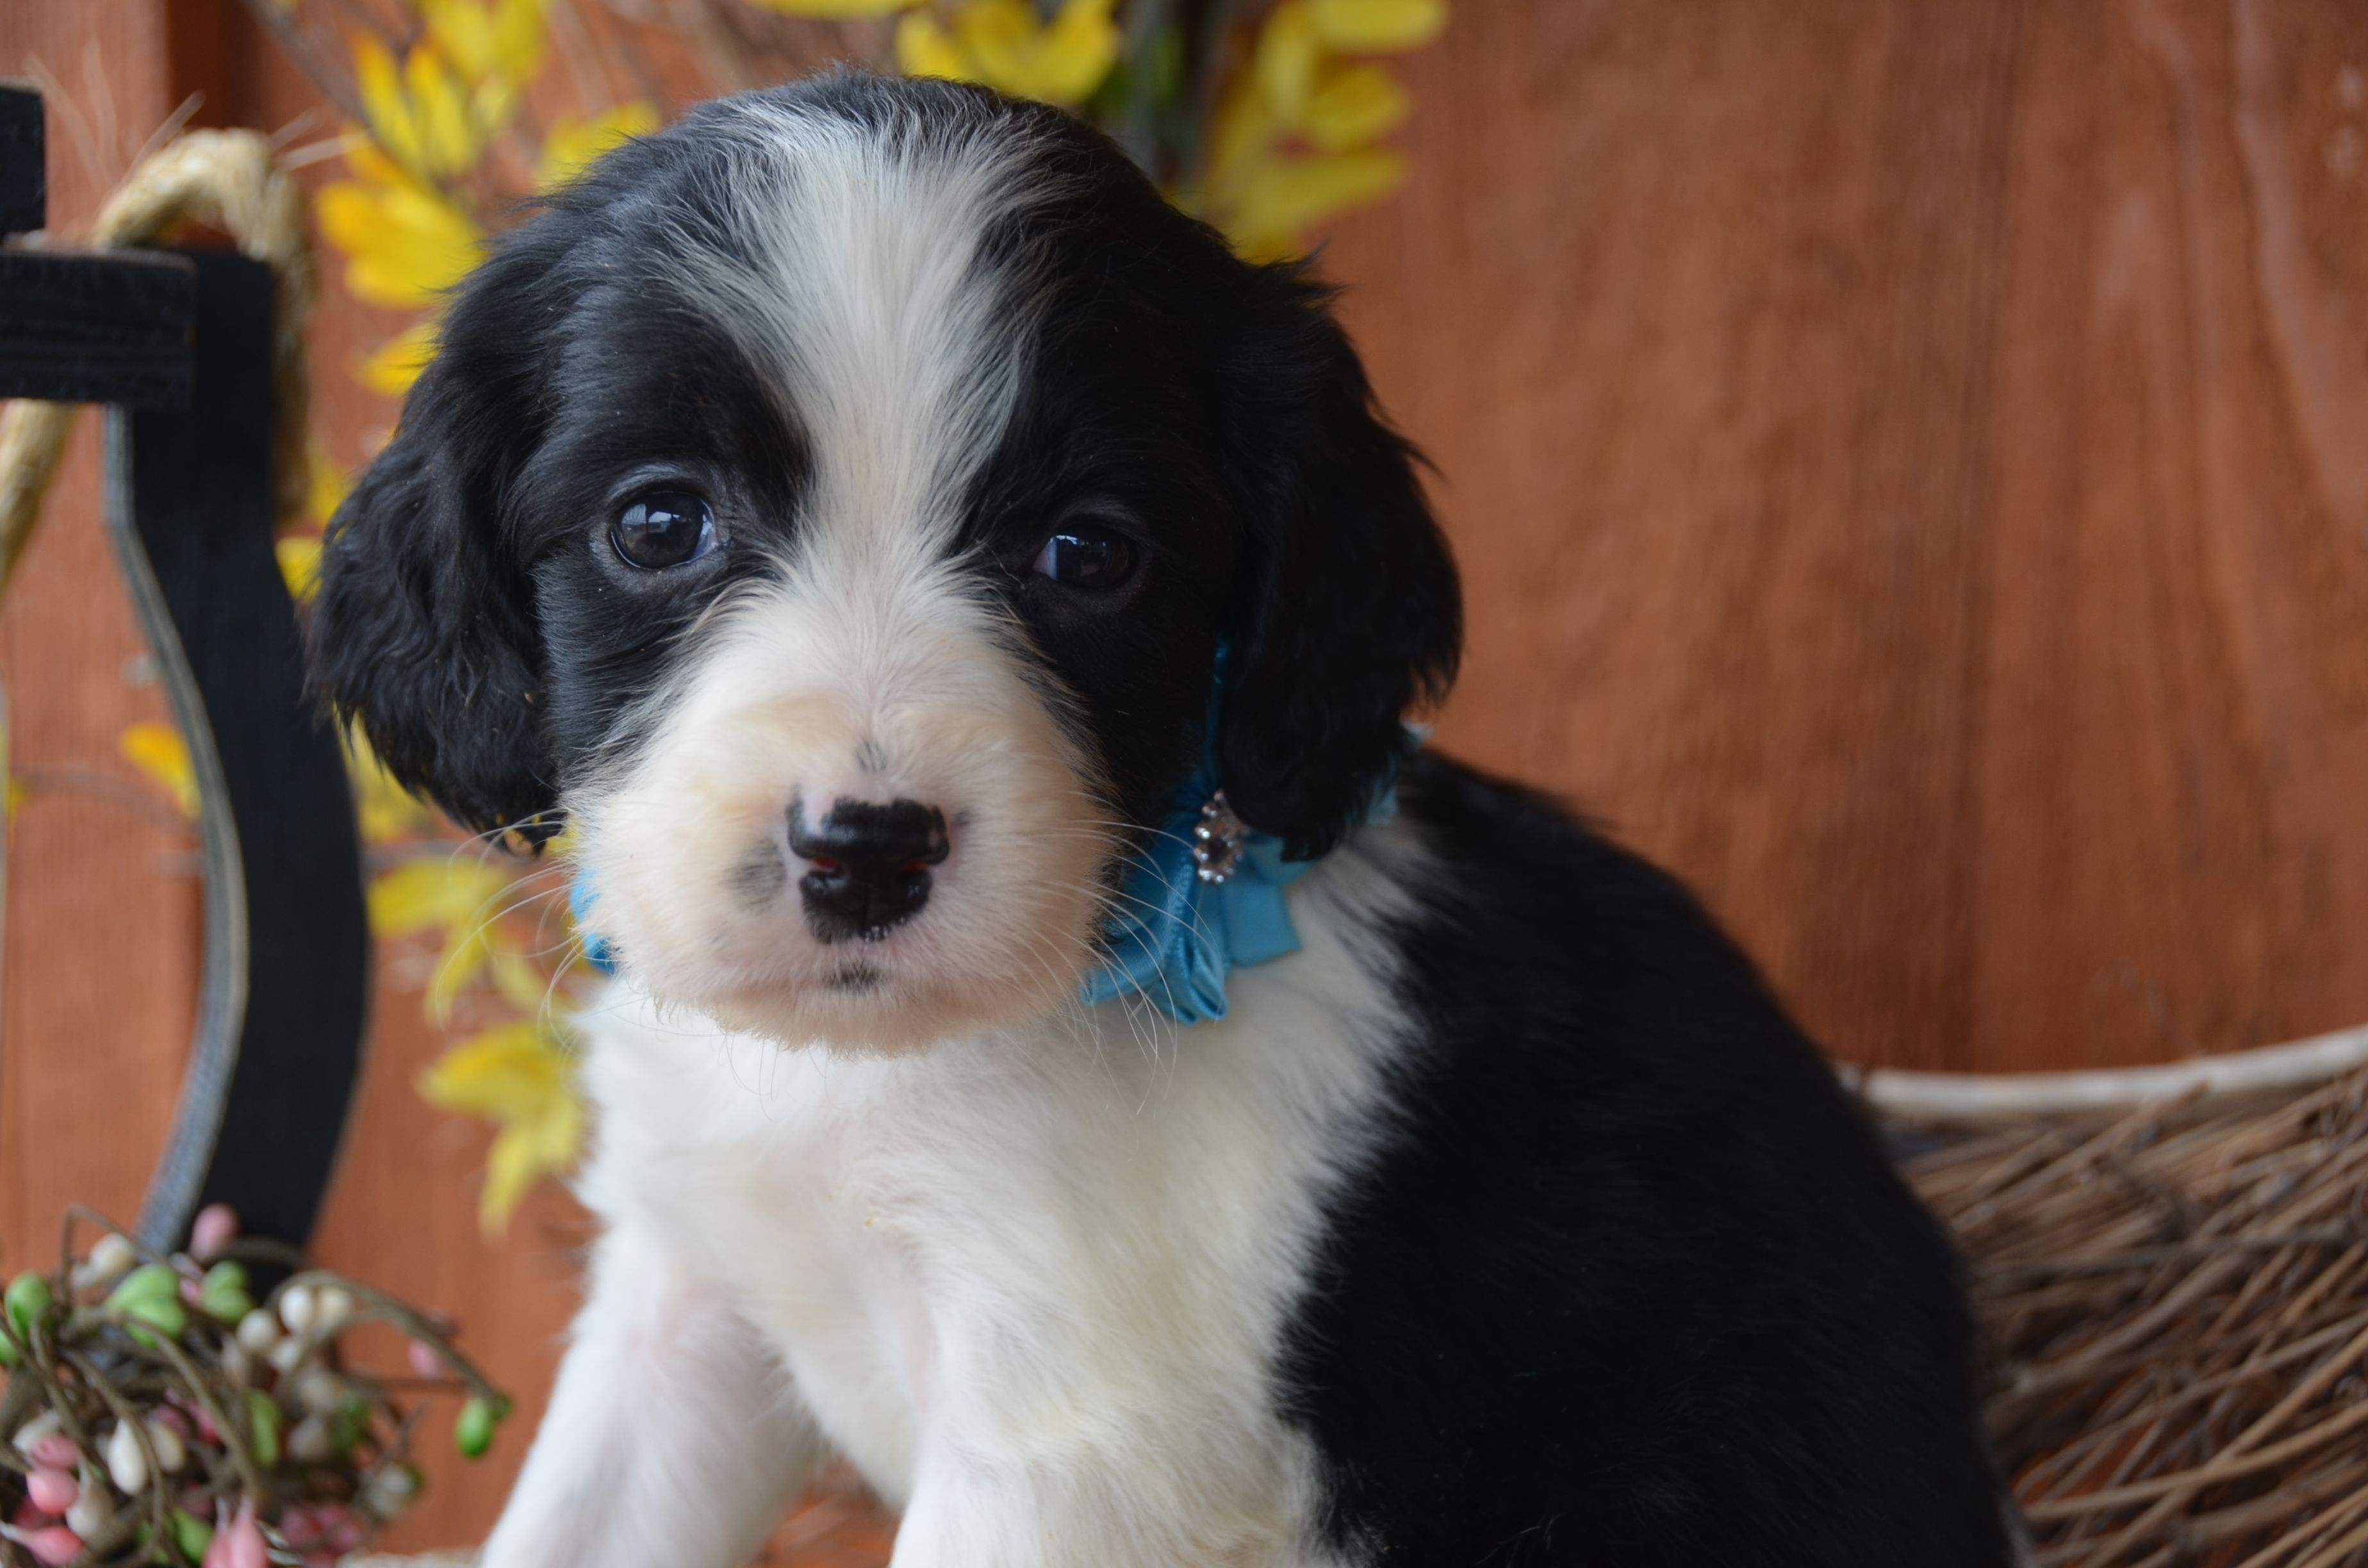 Black and white English Springer Spaniel puppy from